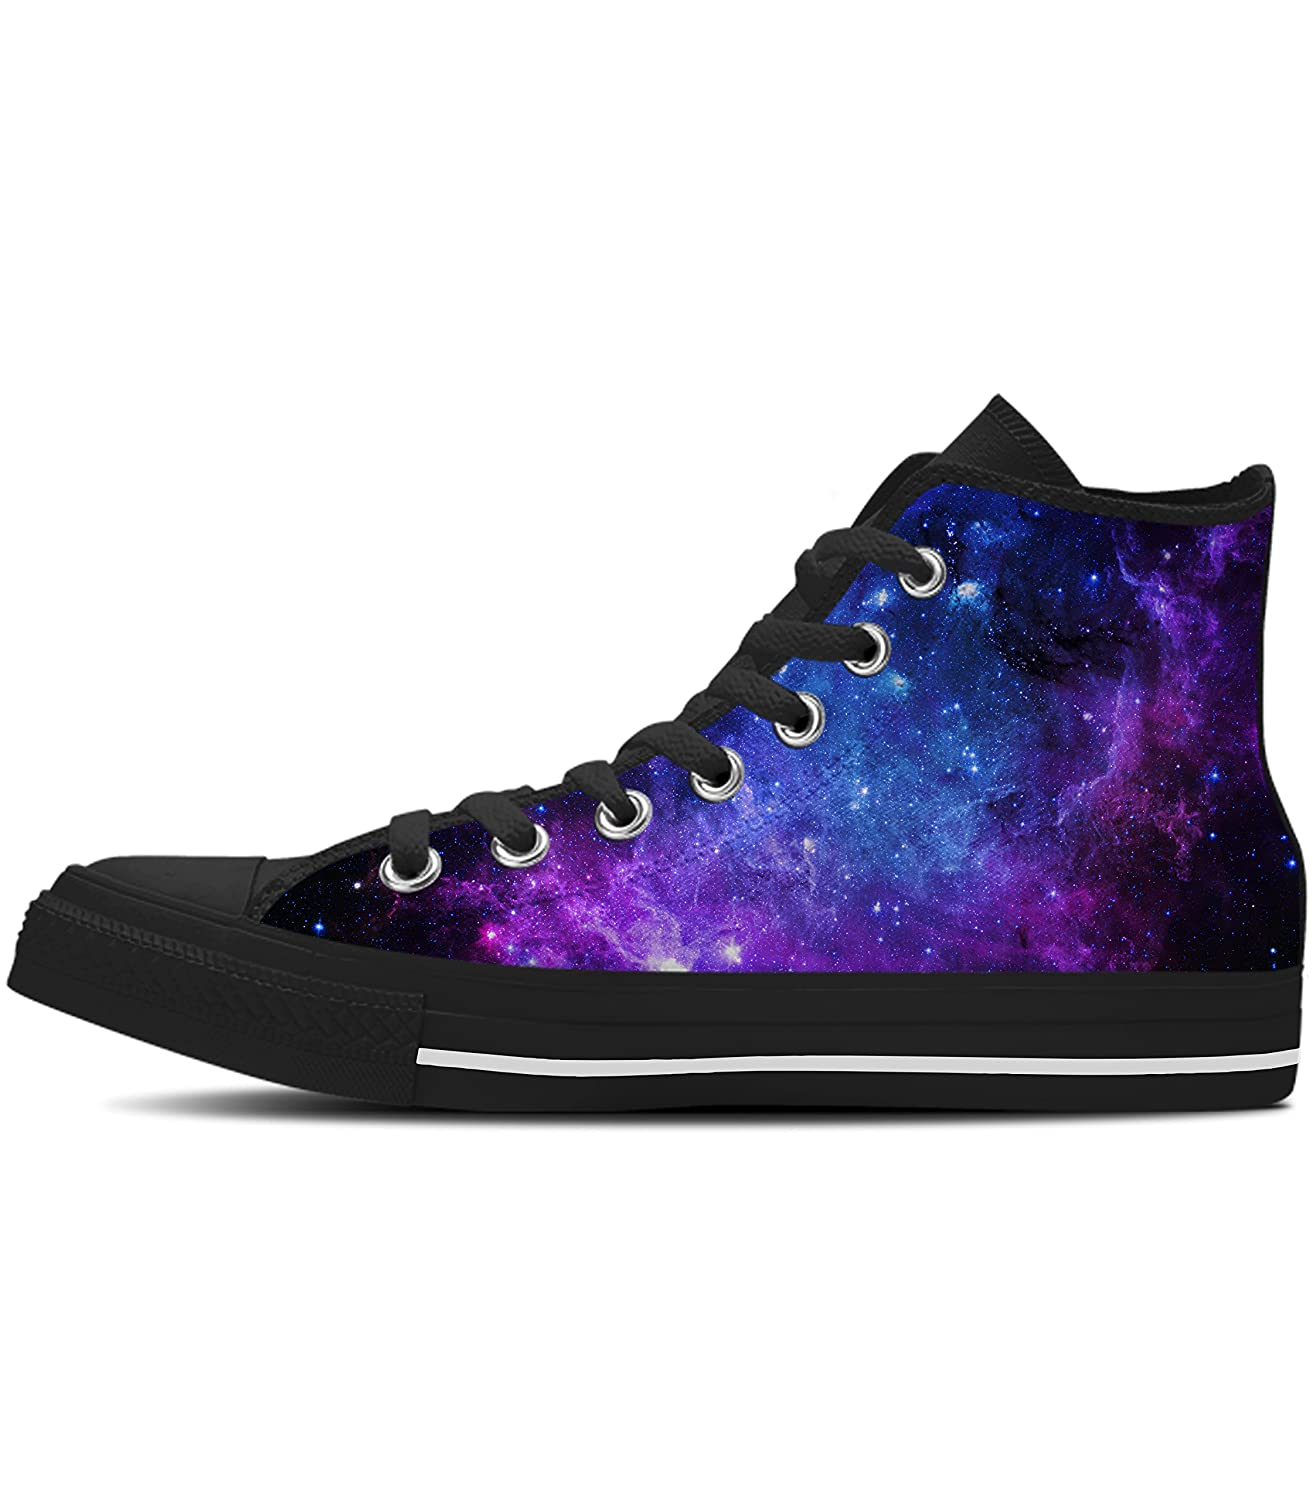 8ed90ddb72728 Amazon.com | Gnarly Tees Women's Galaxy Shoes High Top | Walking